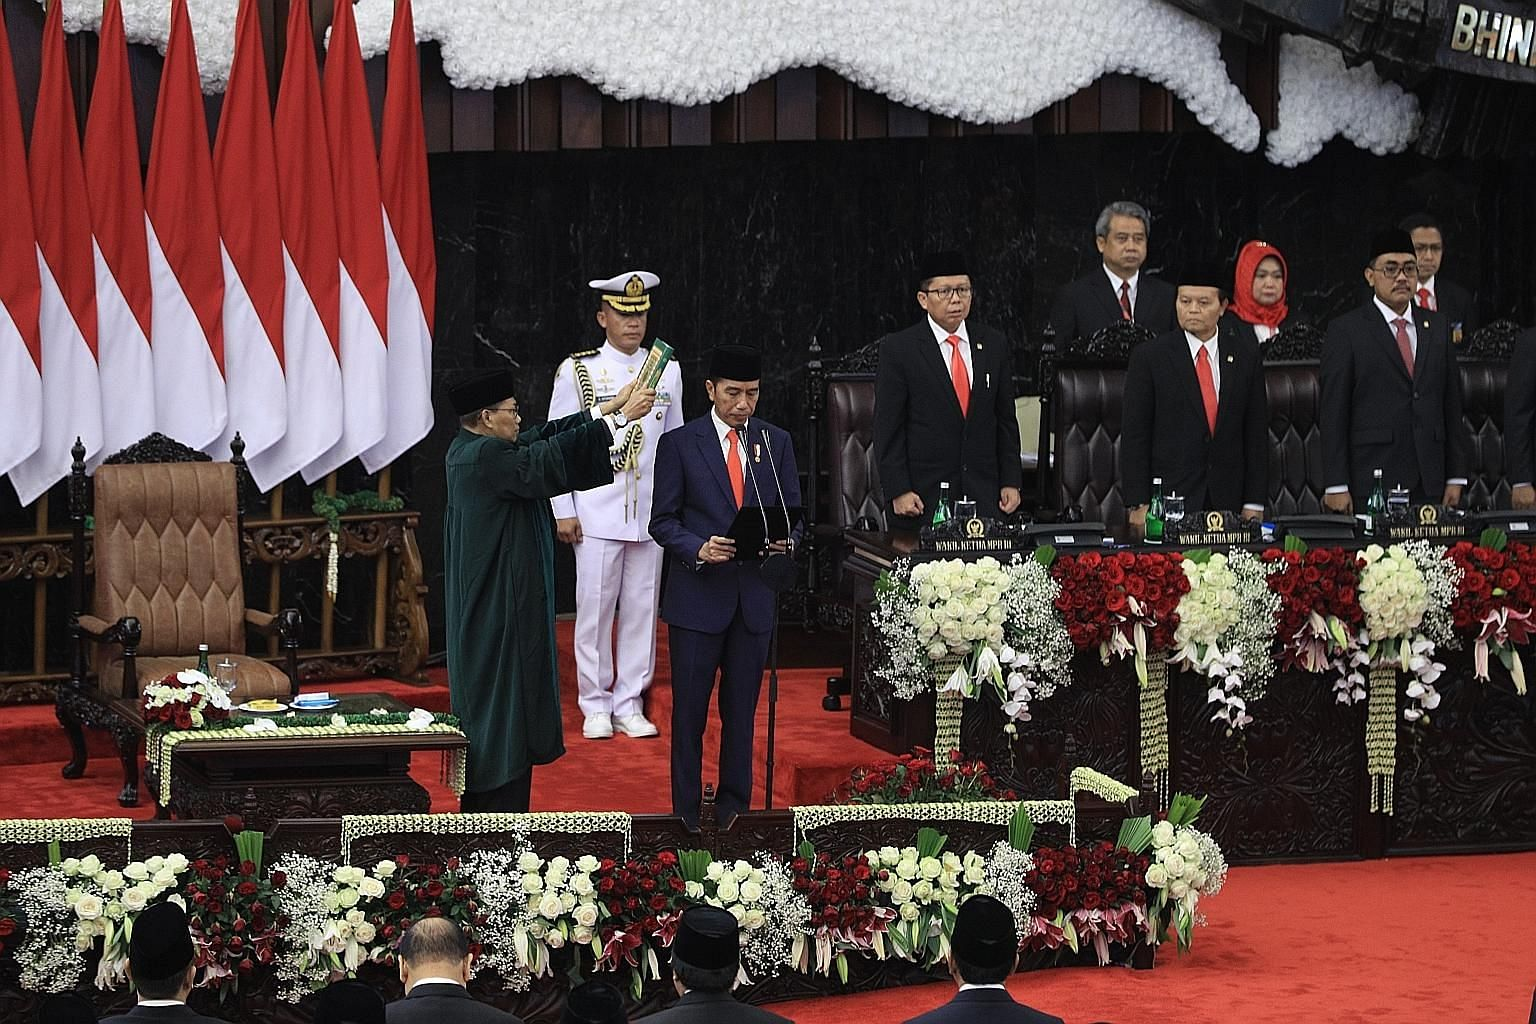 Indonesian President Joko Widodo reciting the oath of office, with a Quran held over his head, at the Parliament building in Jakarta yesterday. In his speech later, he urged Indonesians to stay nimble in the face of challenges.